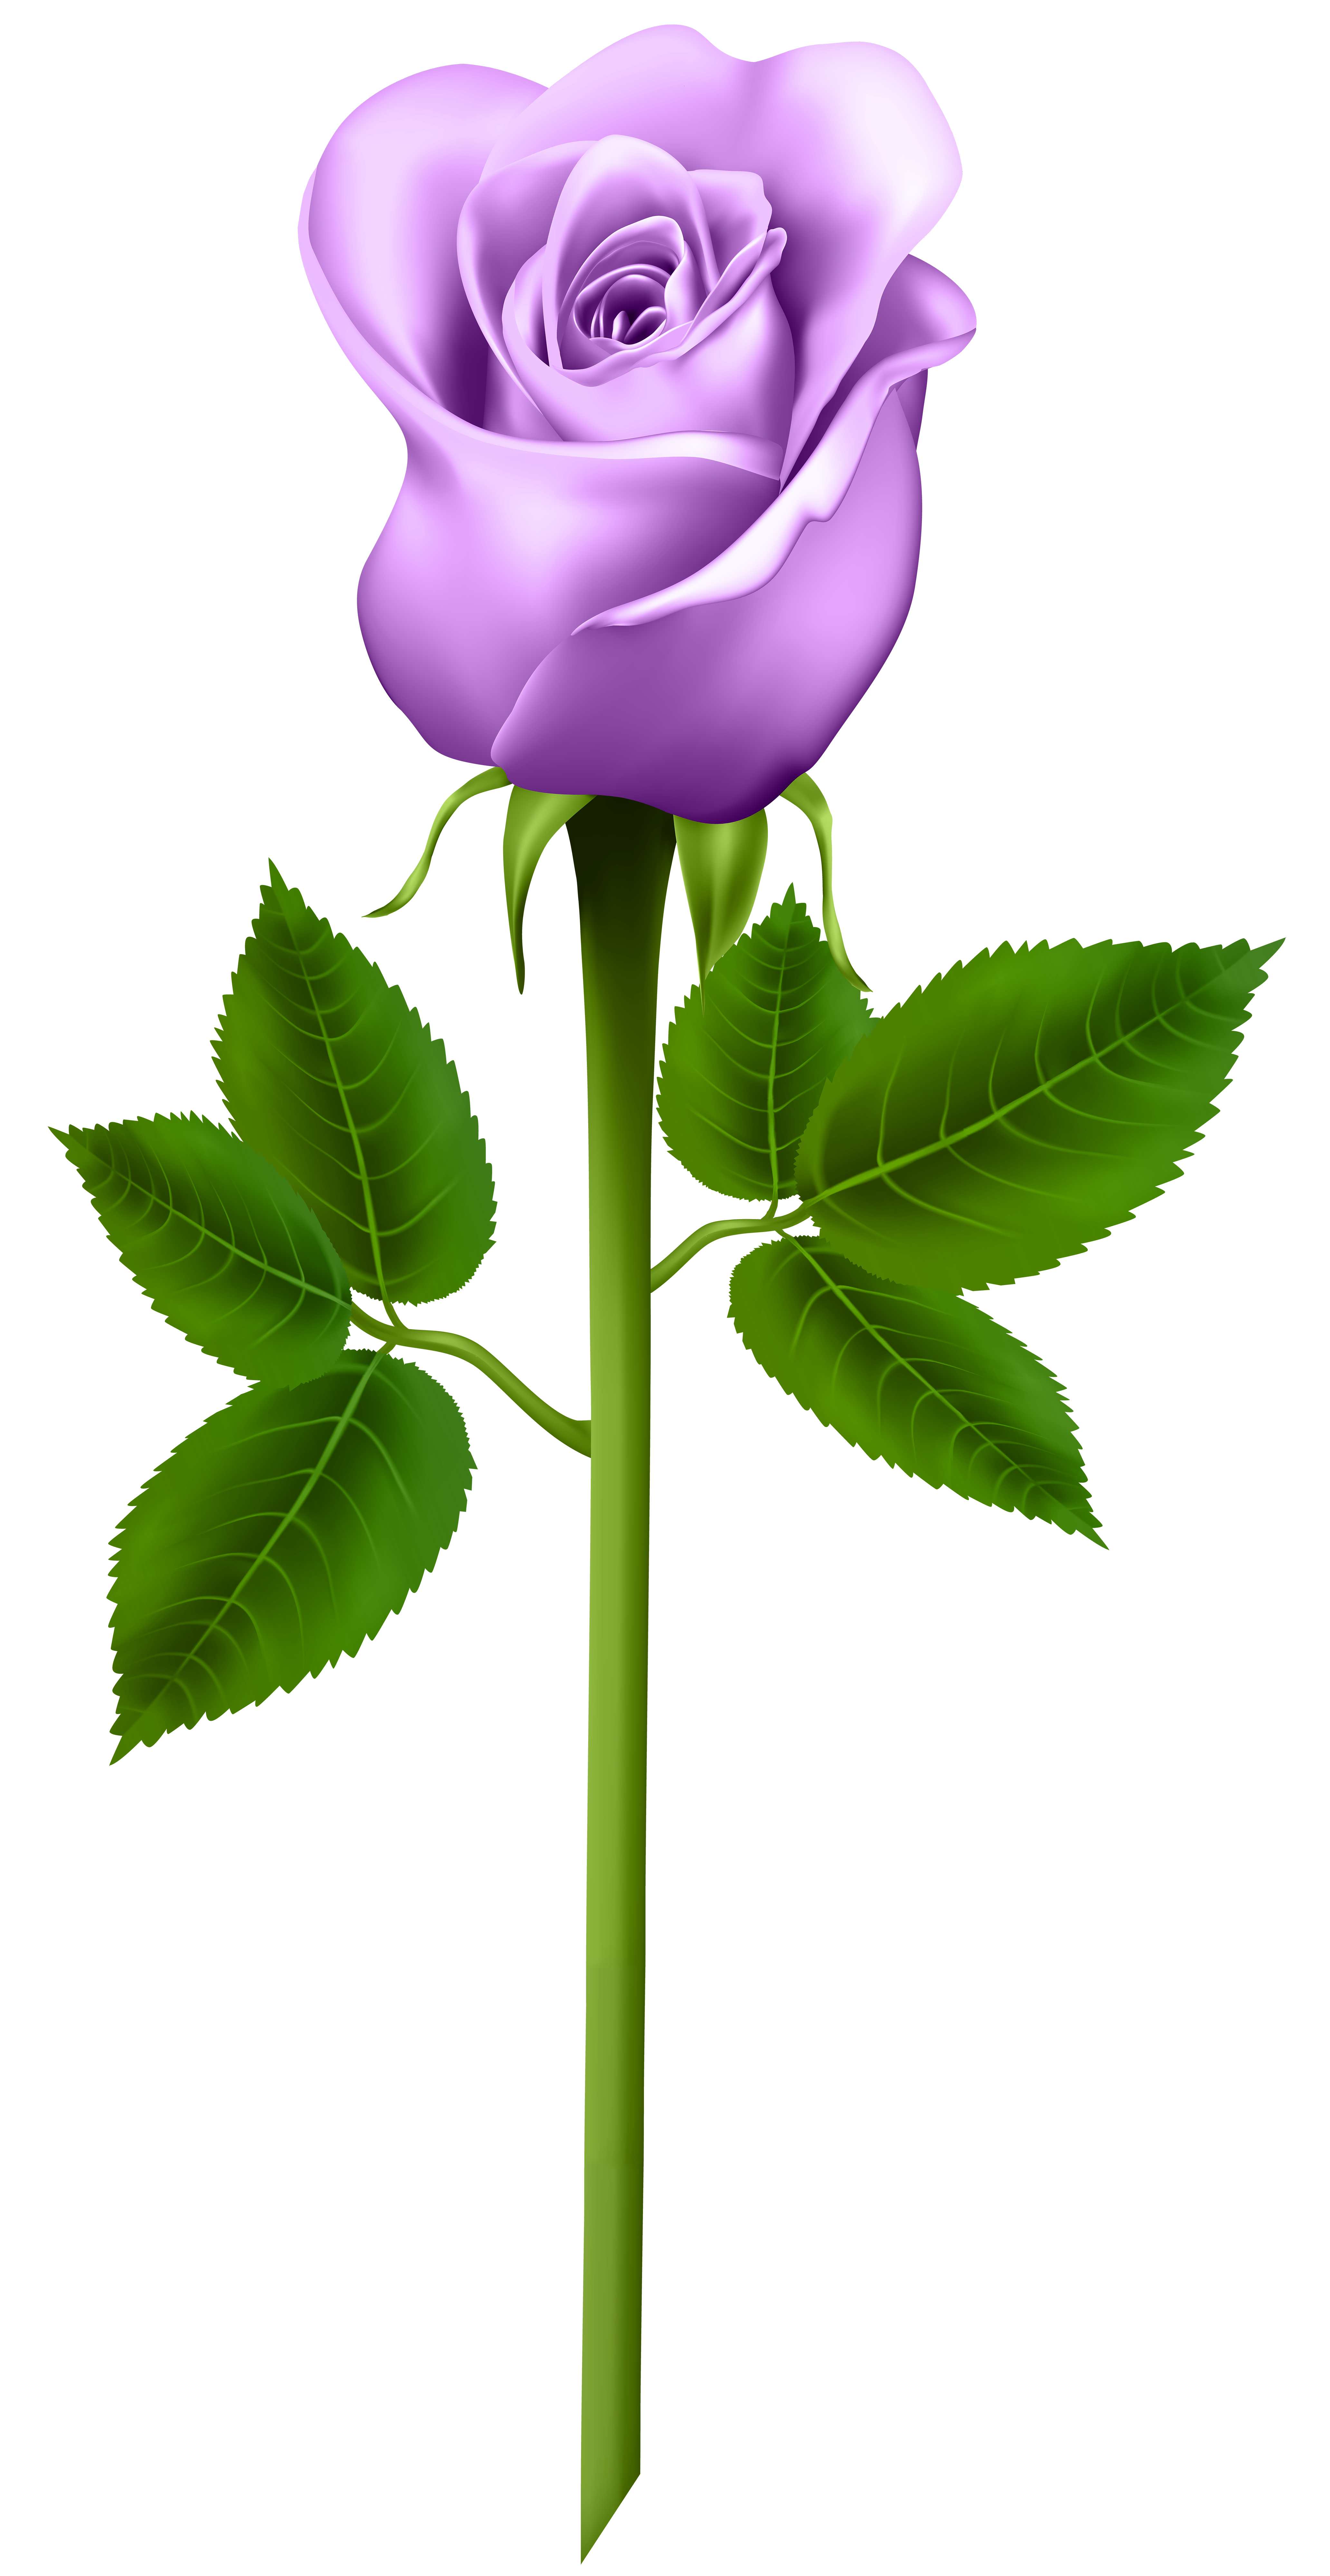 Purple Rose Transparent Png Image Free Download